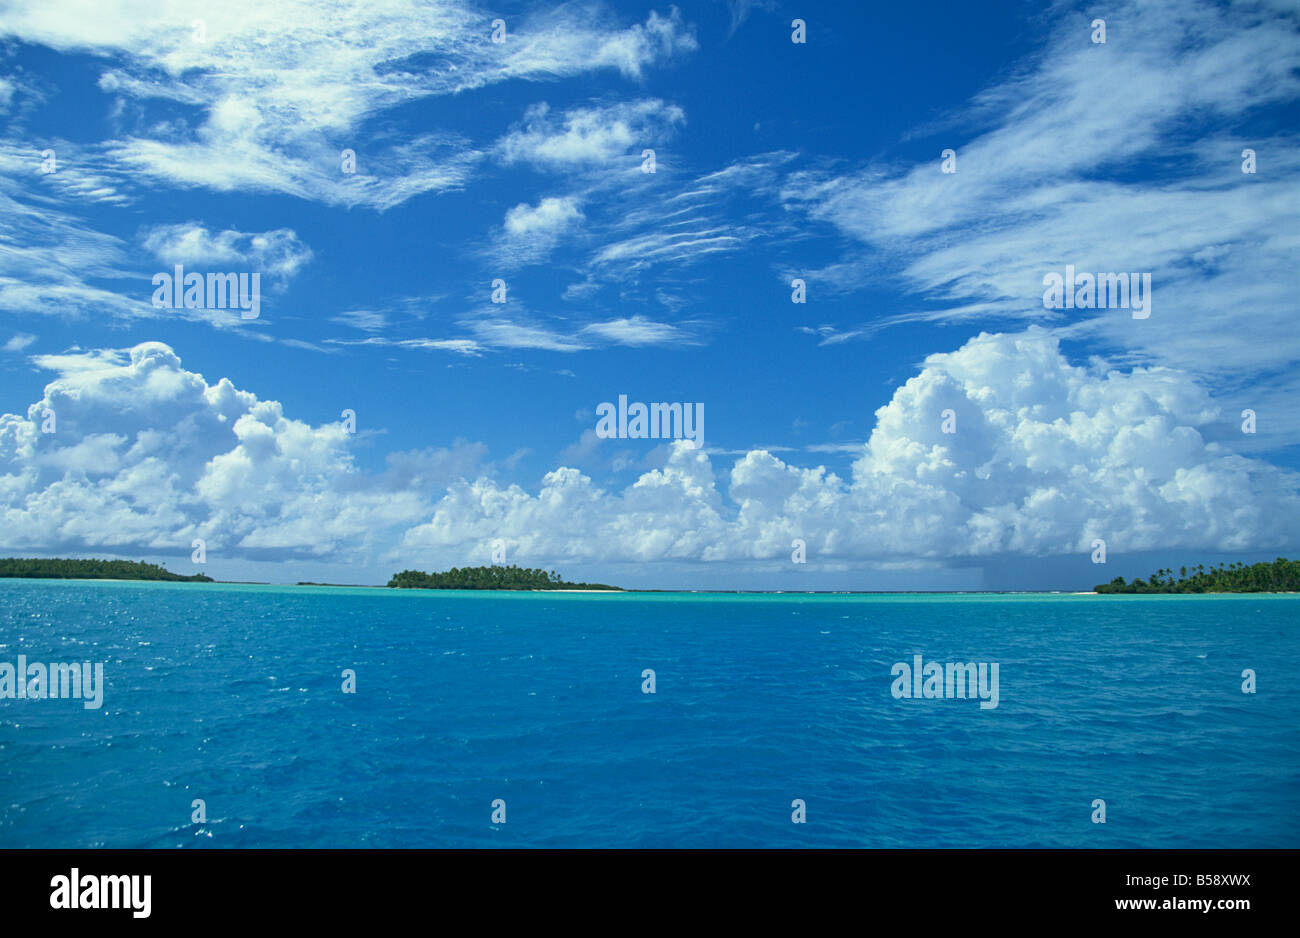 Aitutaki blue lagoon with white sandy  beaches and islands, Cook Islands, South Pacific, Pacific - Stock Image